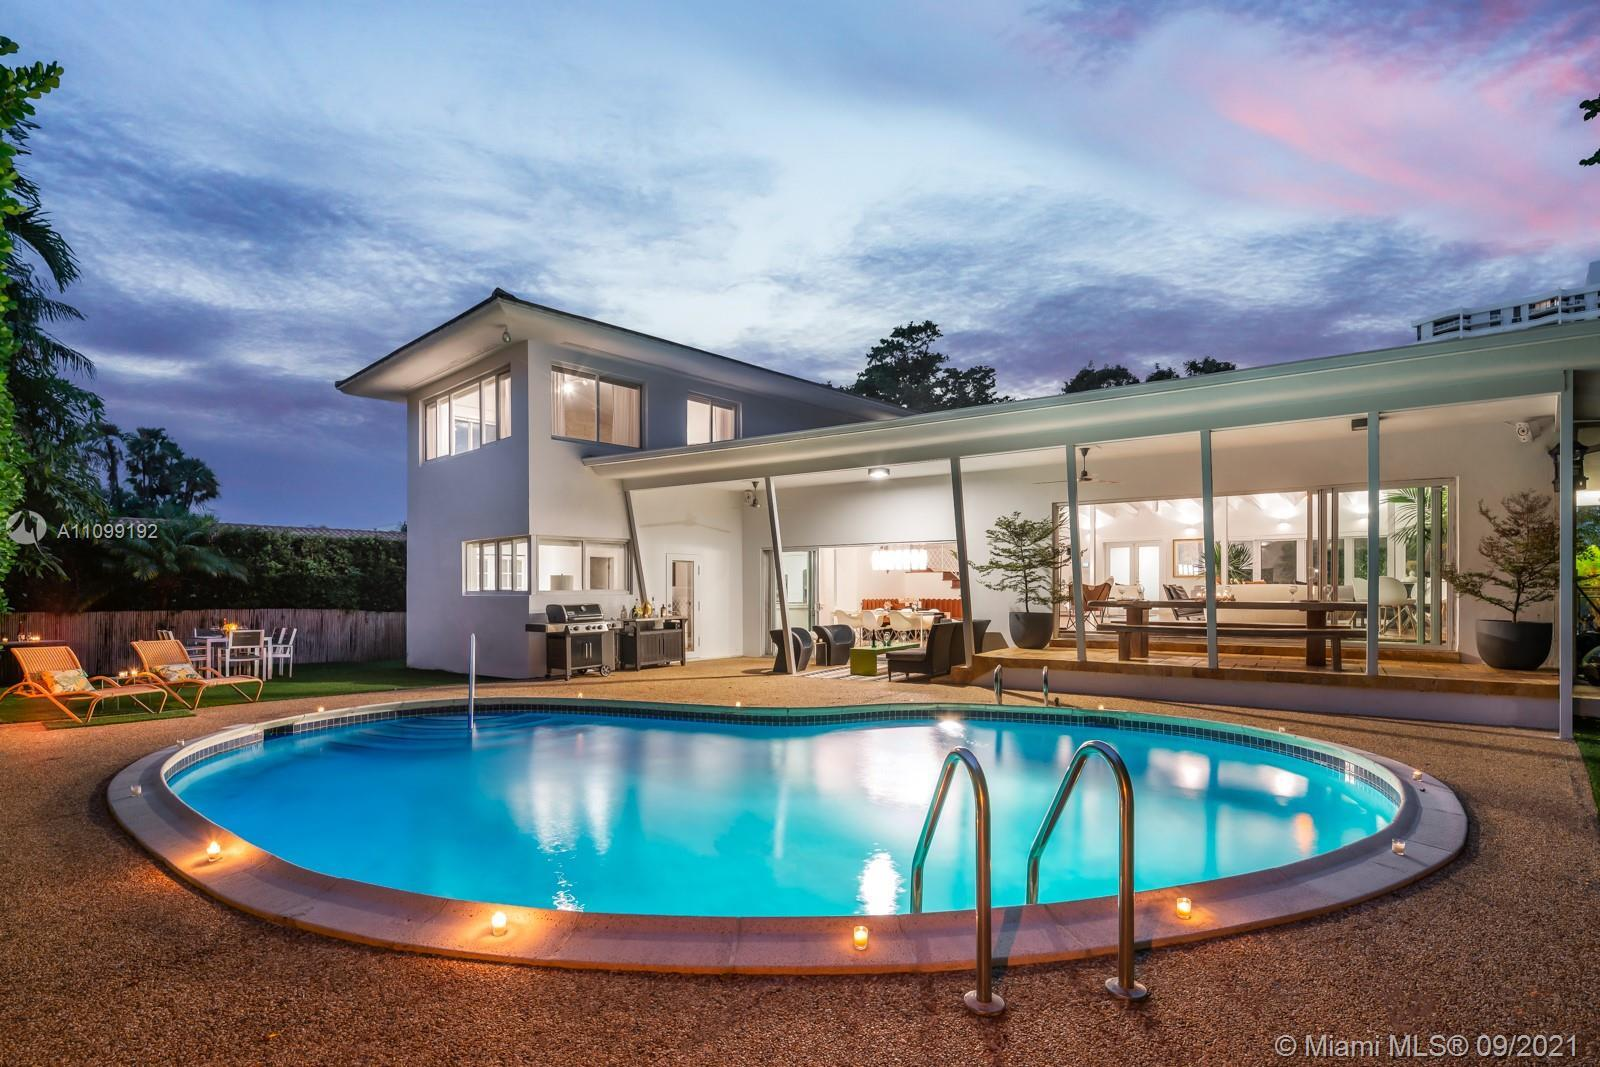 Life is extraordinaire at The Nordinaire! Be wowed by this tri-level Mid-Century trophy pool home, a